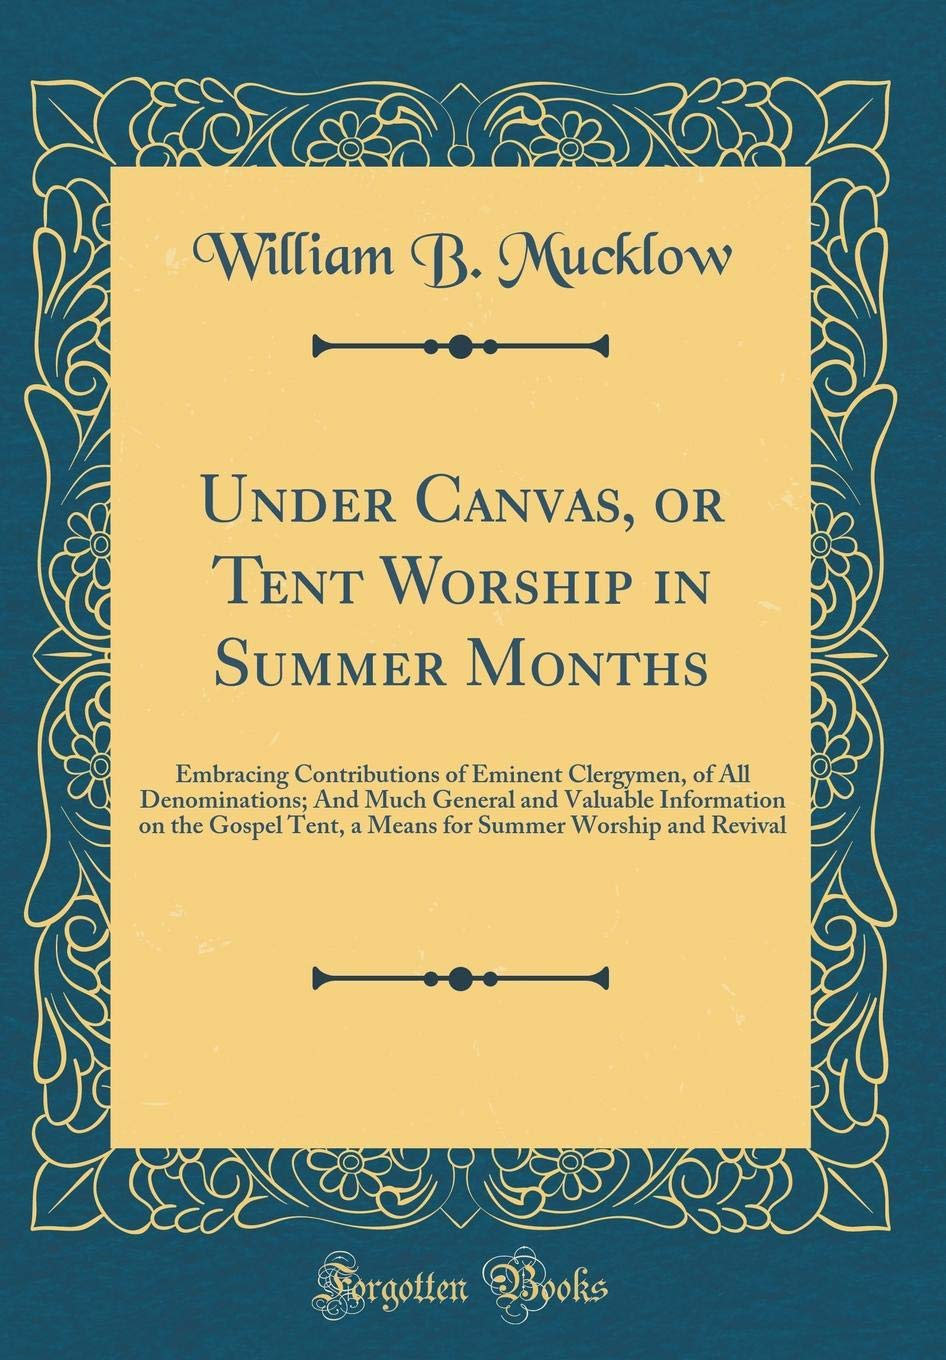 Under Canvas, or Tent Worship in Summer Months: Embracing Contributions of Eminent Clergymen, of All Denominations; And Much General and Valuable ... Summer Worship and Revival (Classic Reprint) ebook